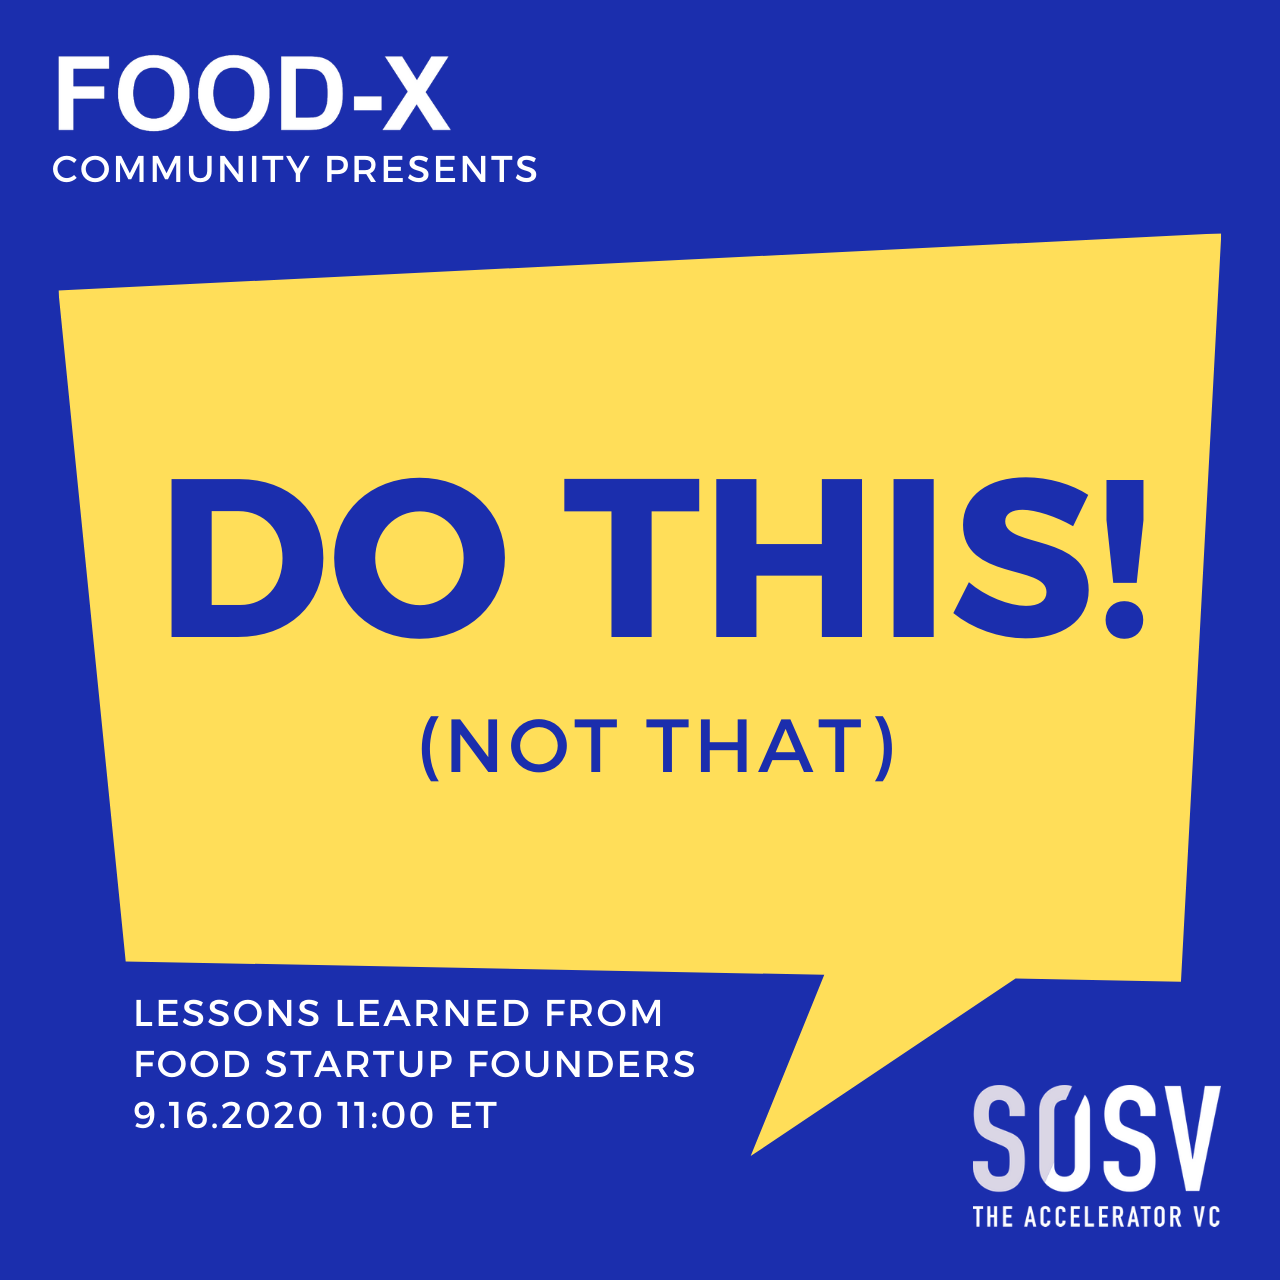 Food-X Community Presents: Do This, Not That. Stories from Food Entrepreneurs